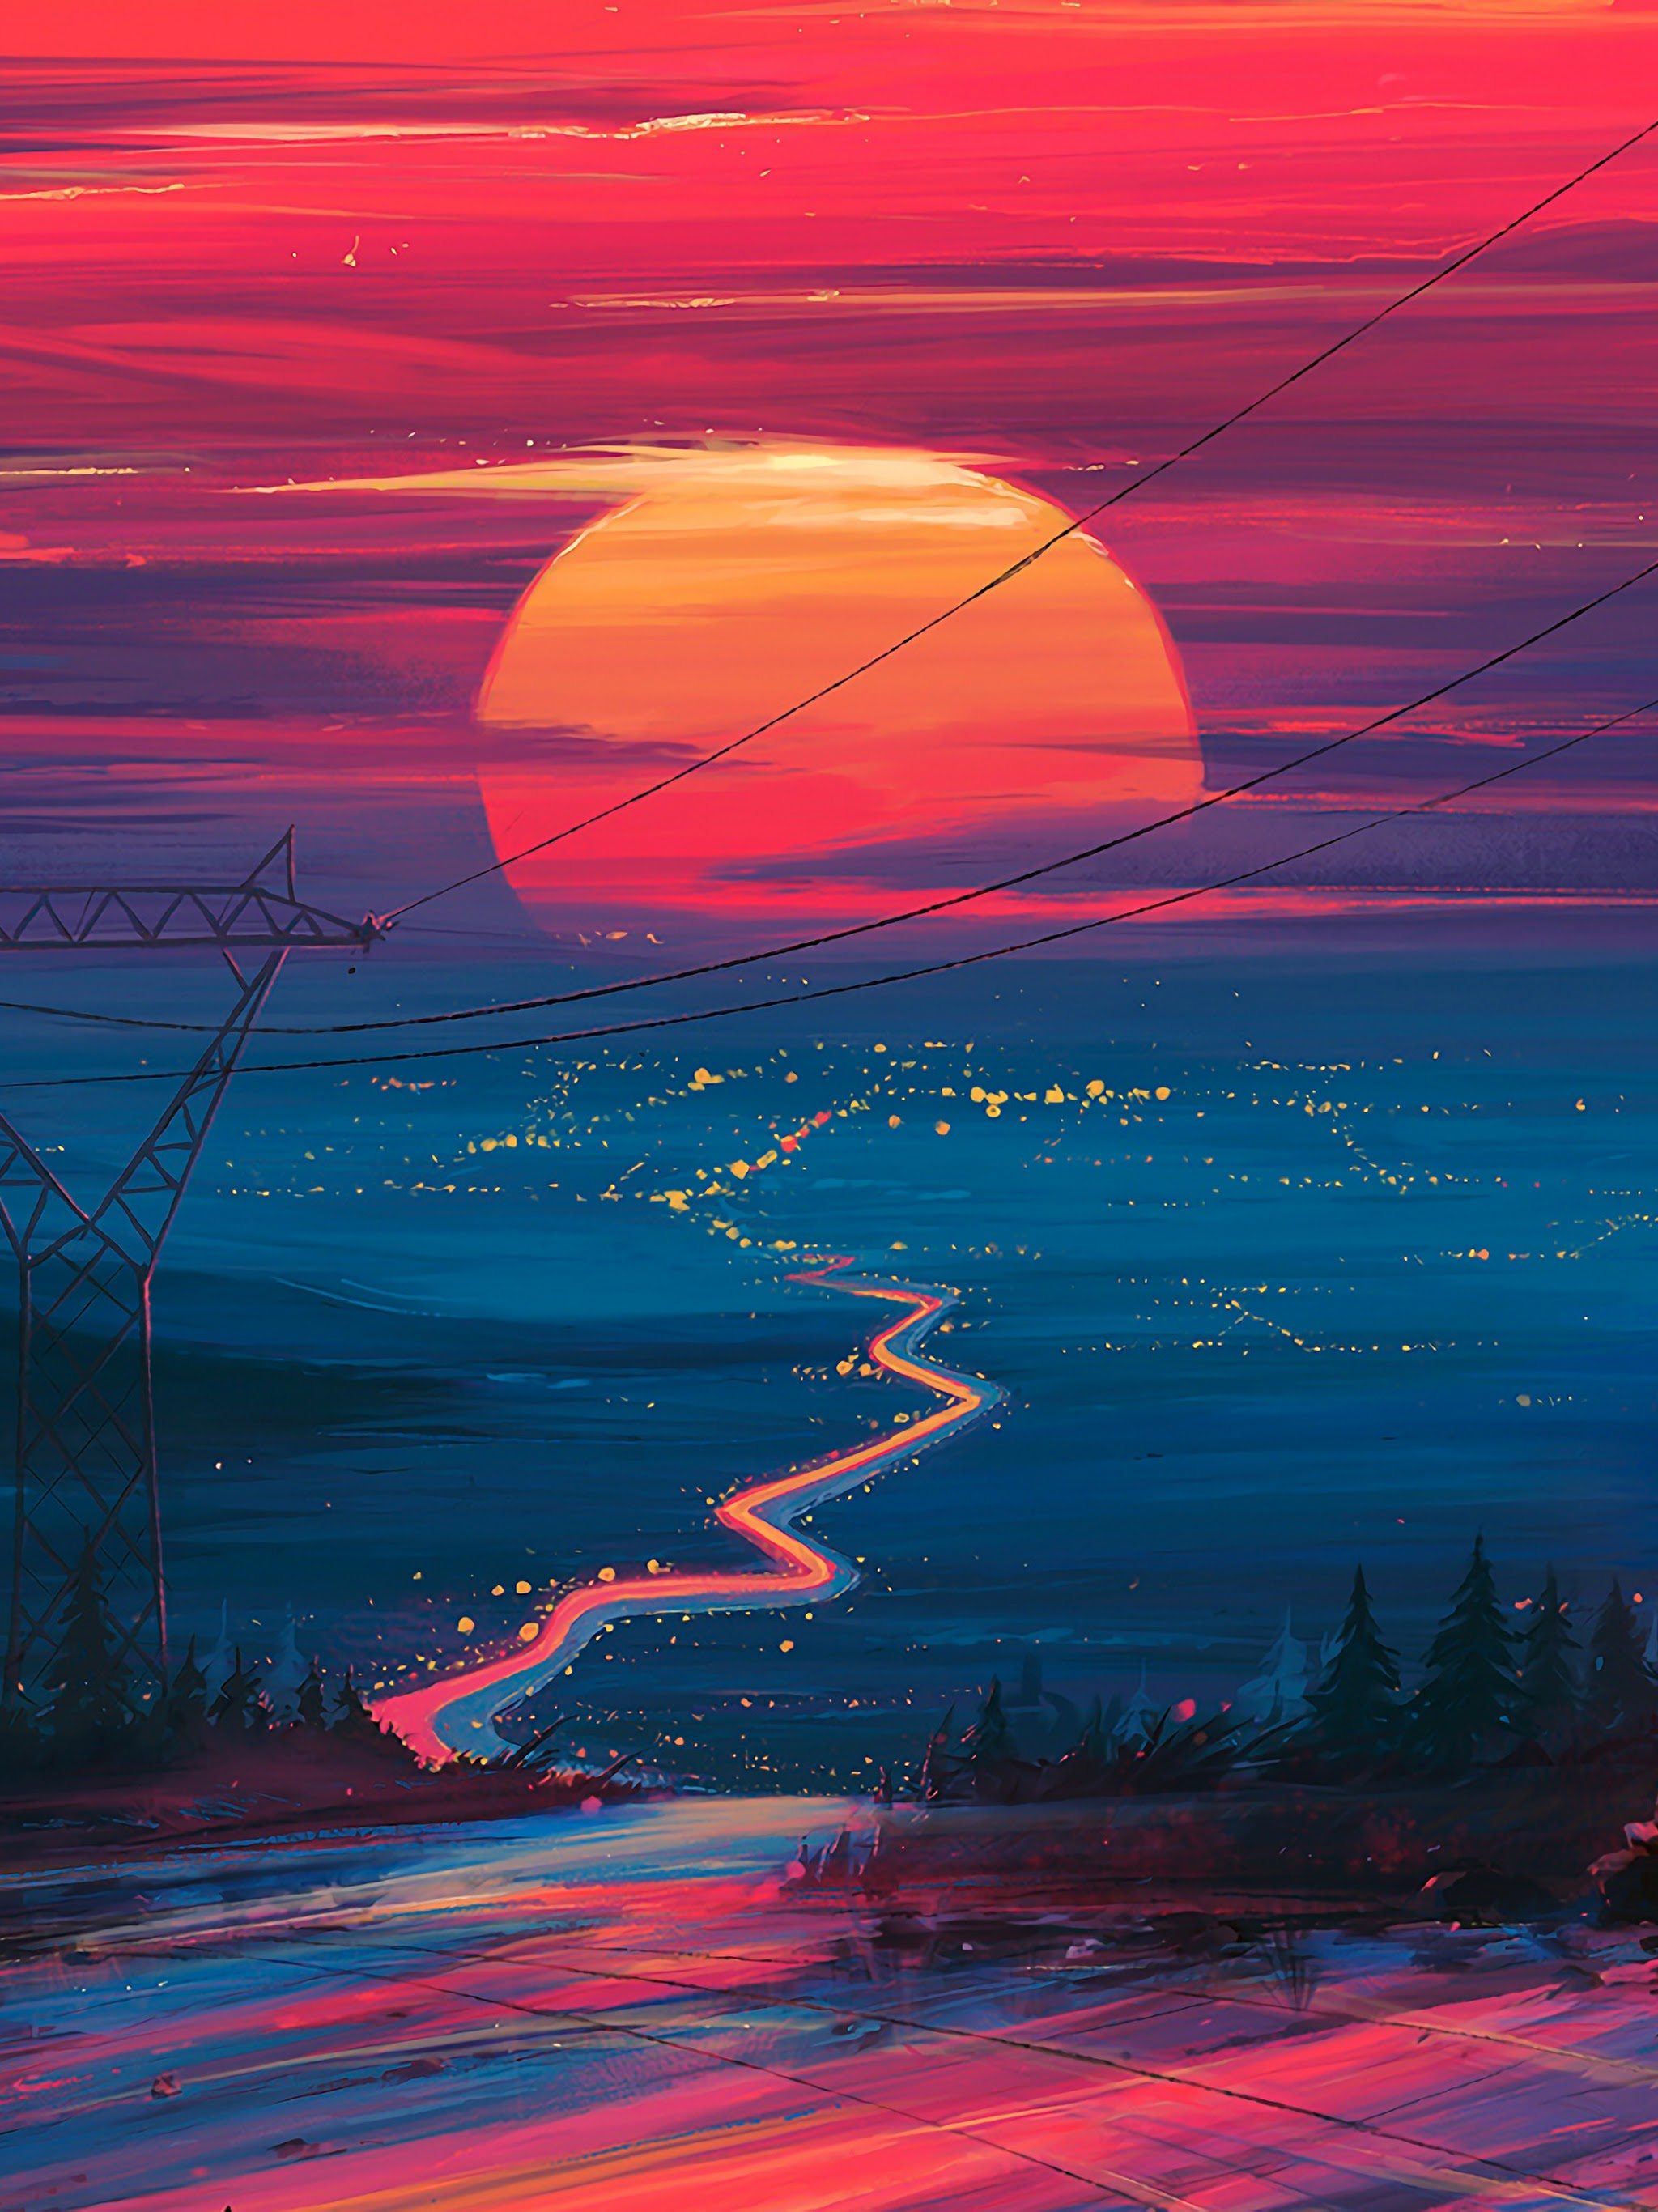 Sunset Horizon Scenery Landscape Art 4k Wallpaper 178